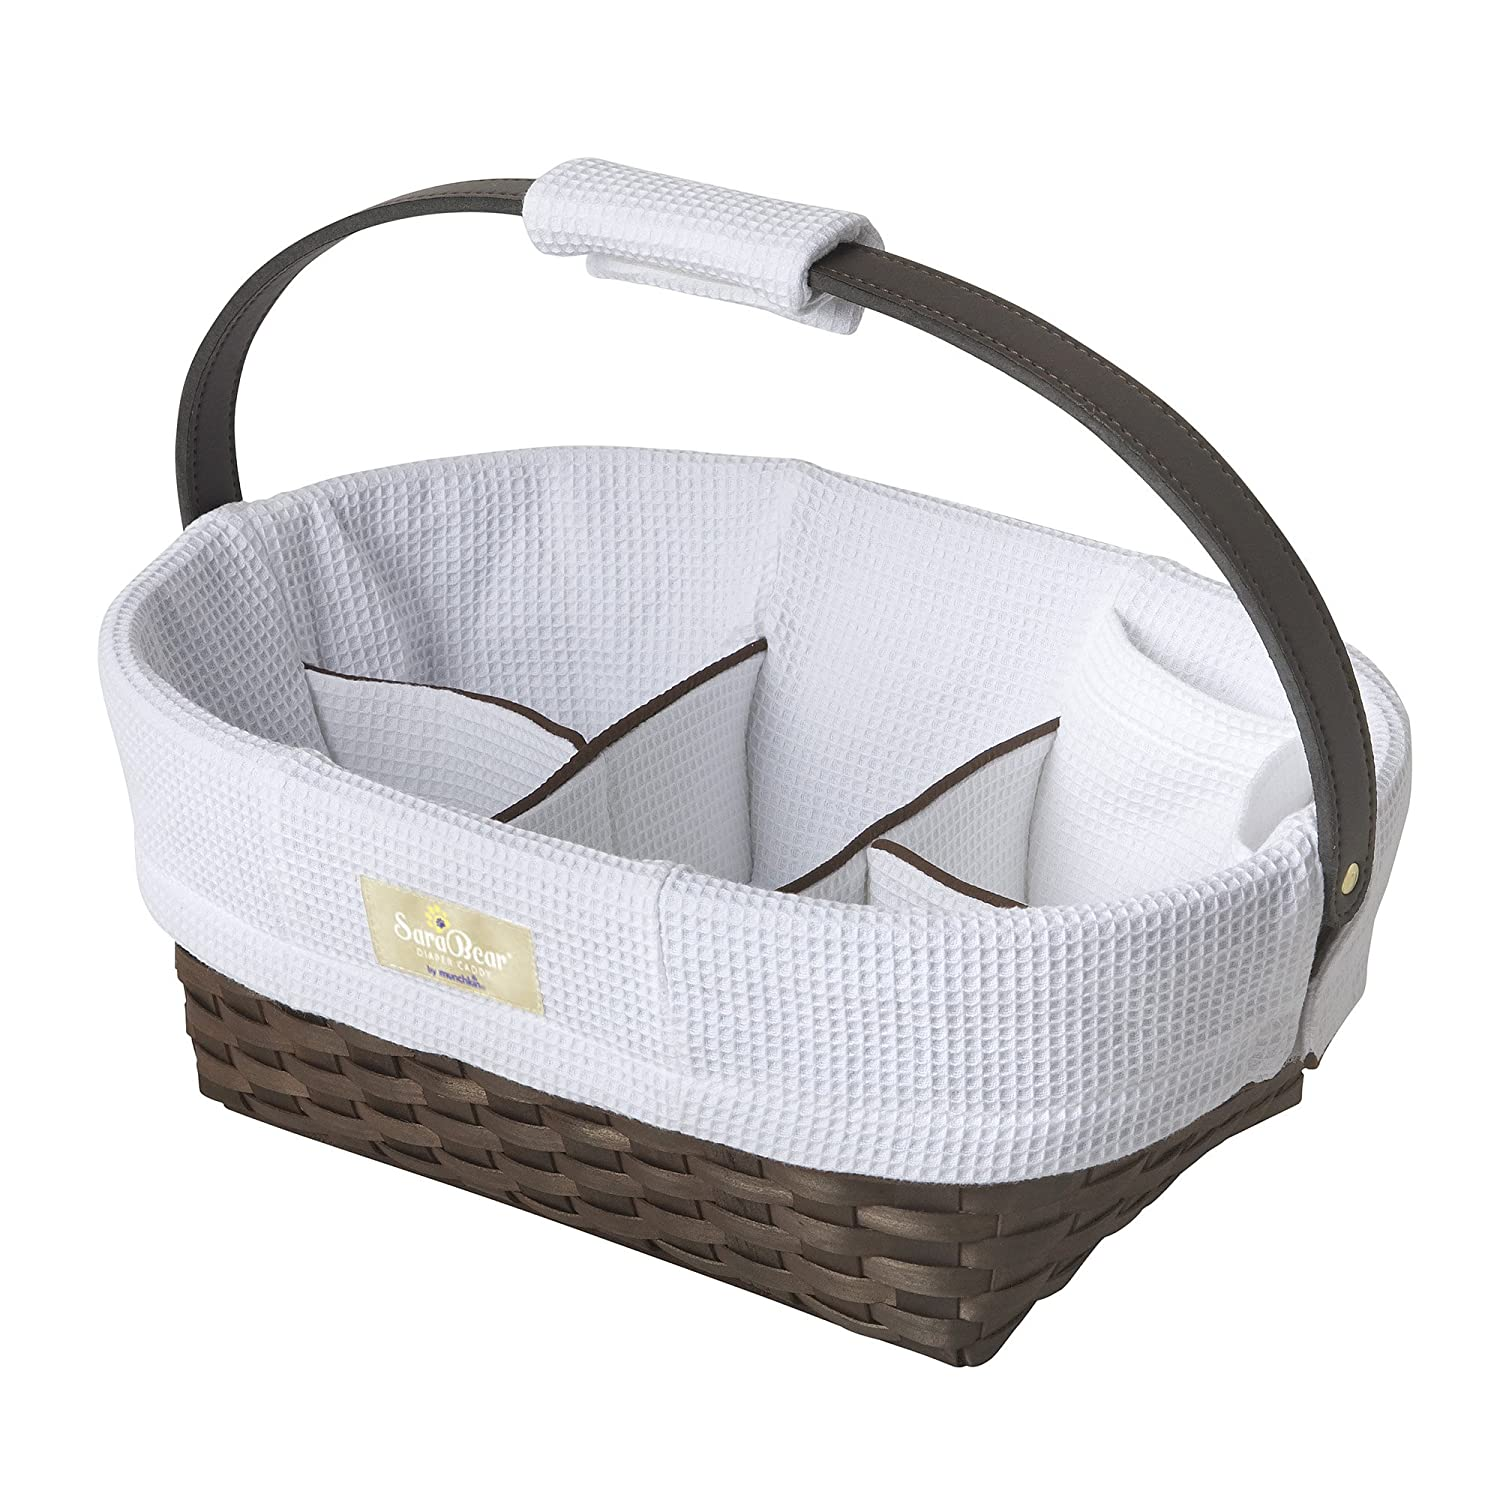 Munchkin Portable Diaper Caddy White Image 2